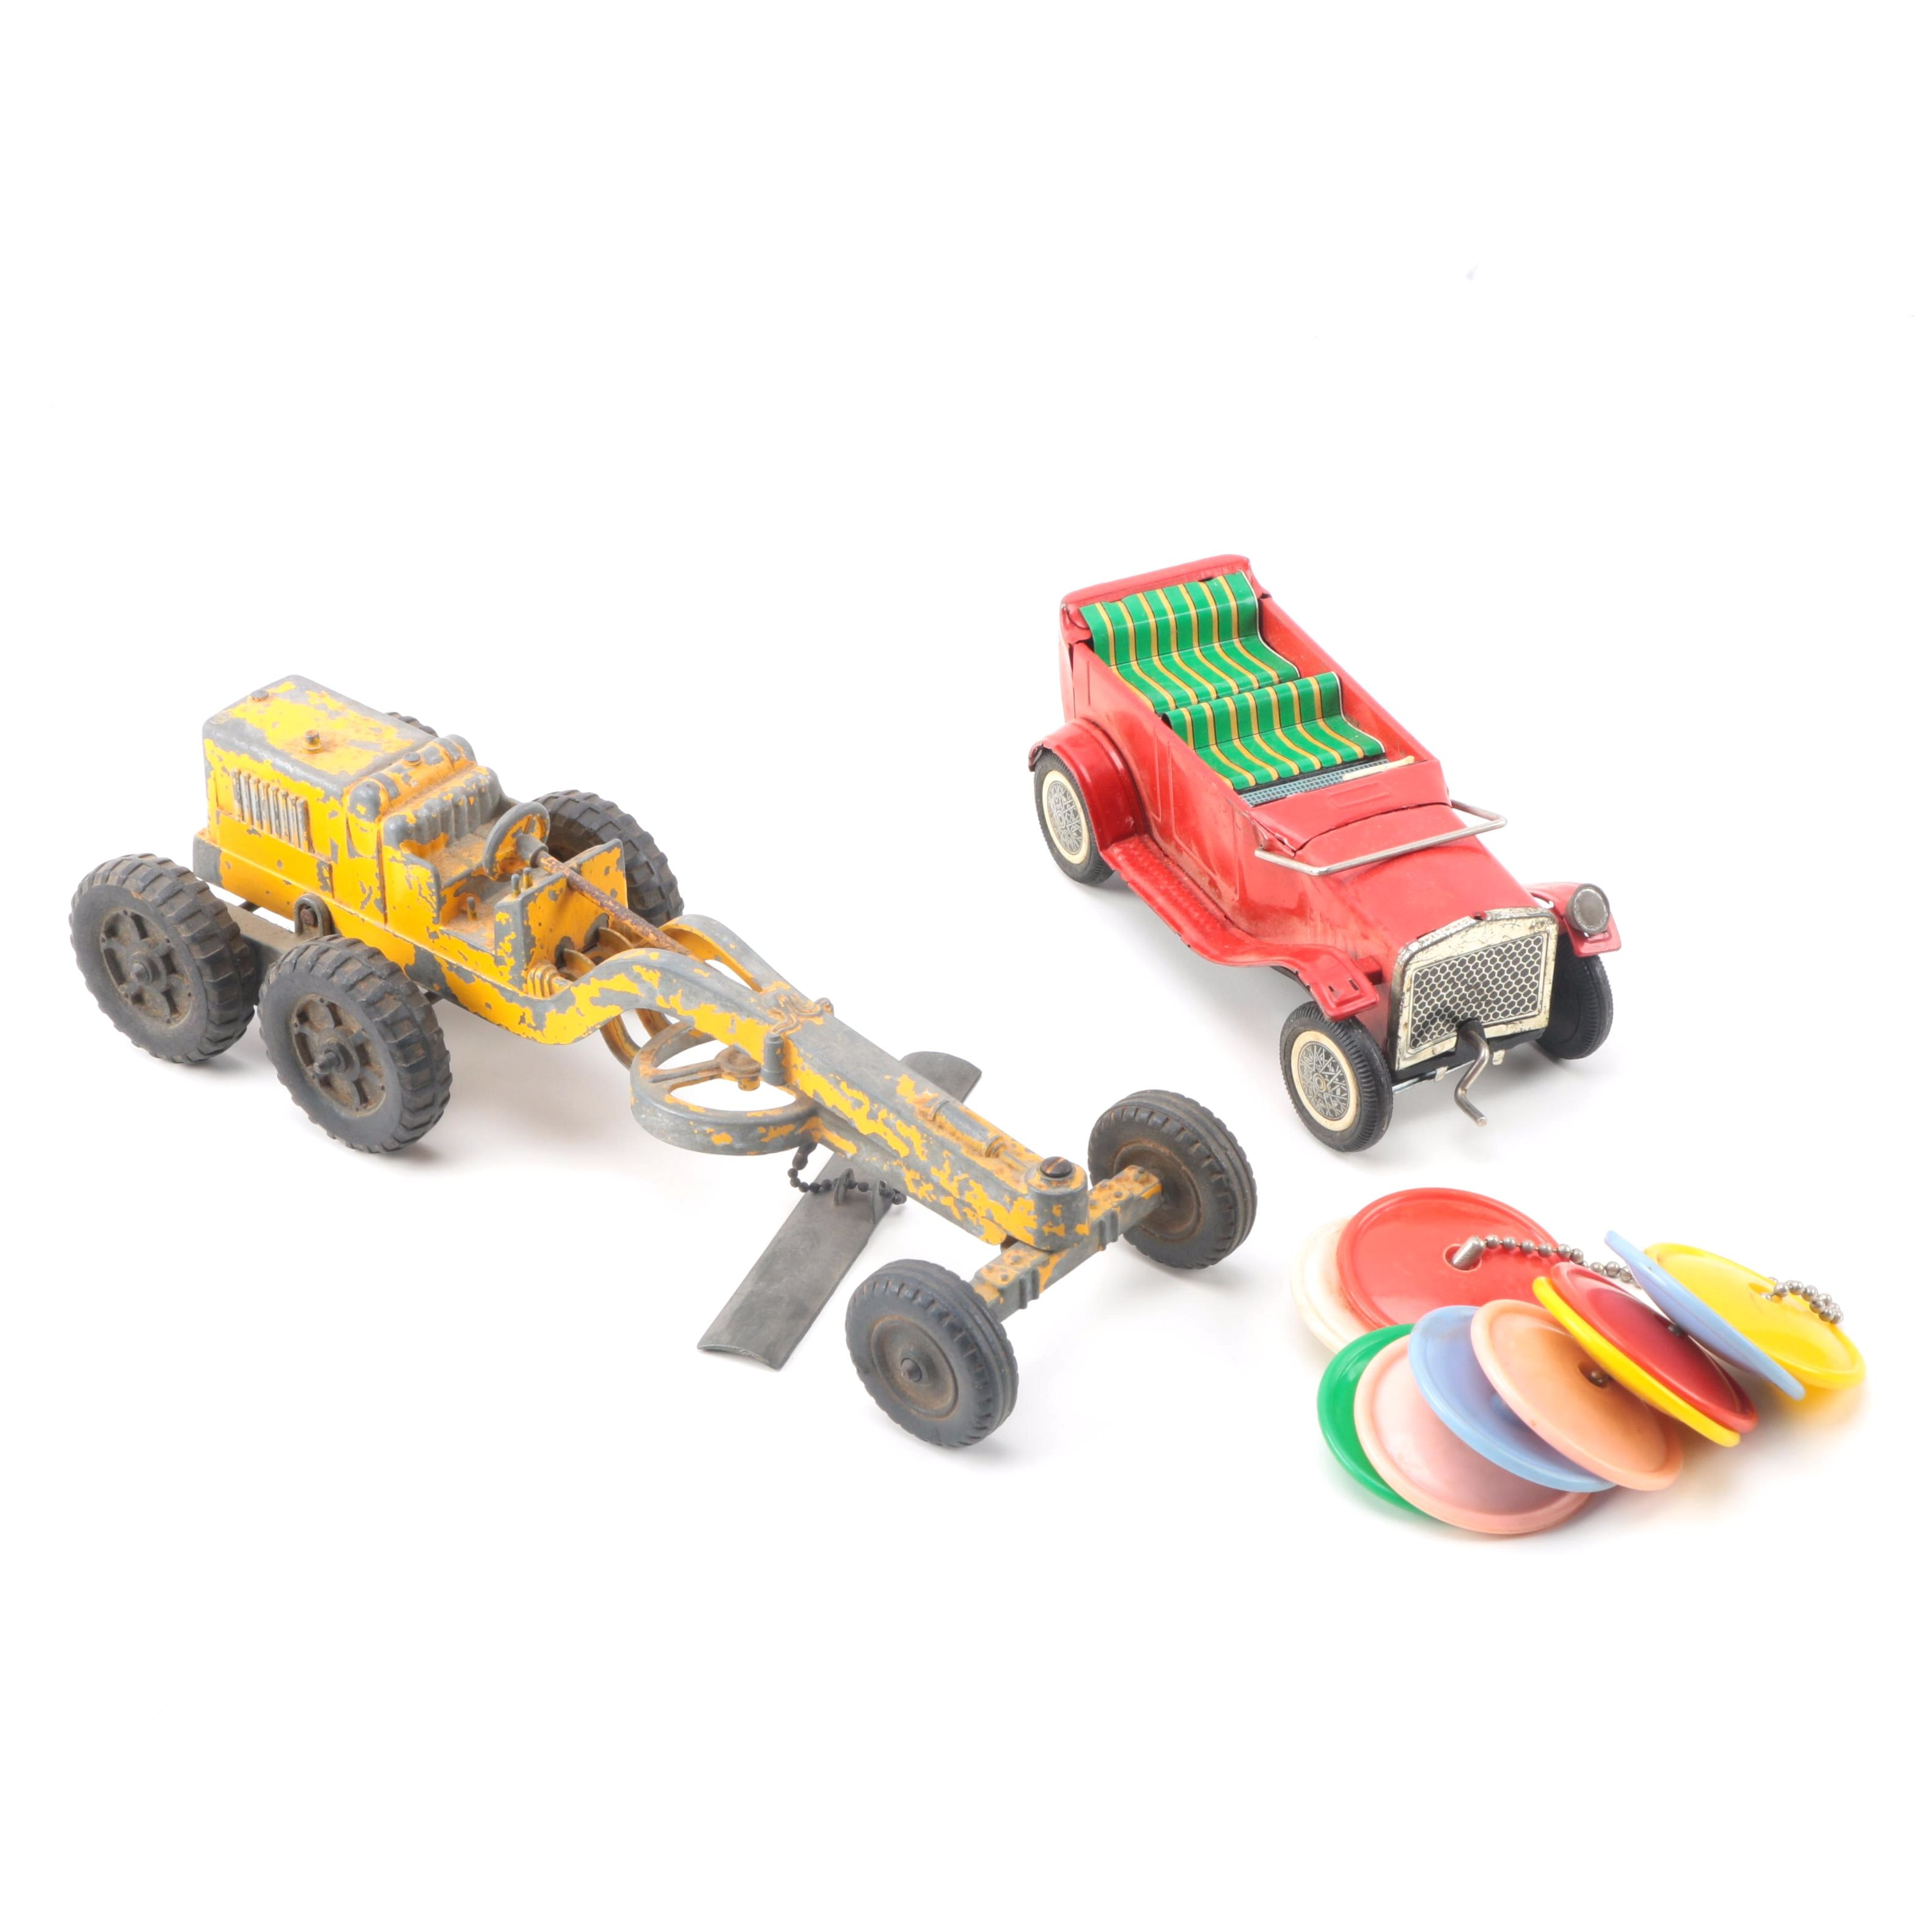 Vintage Toy Vehicles and Rings